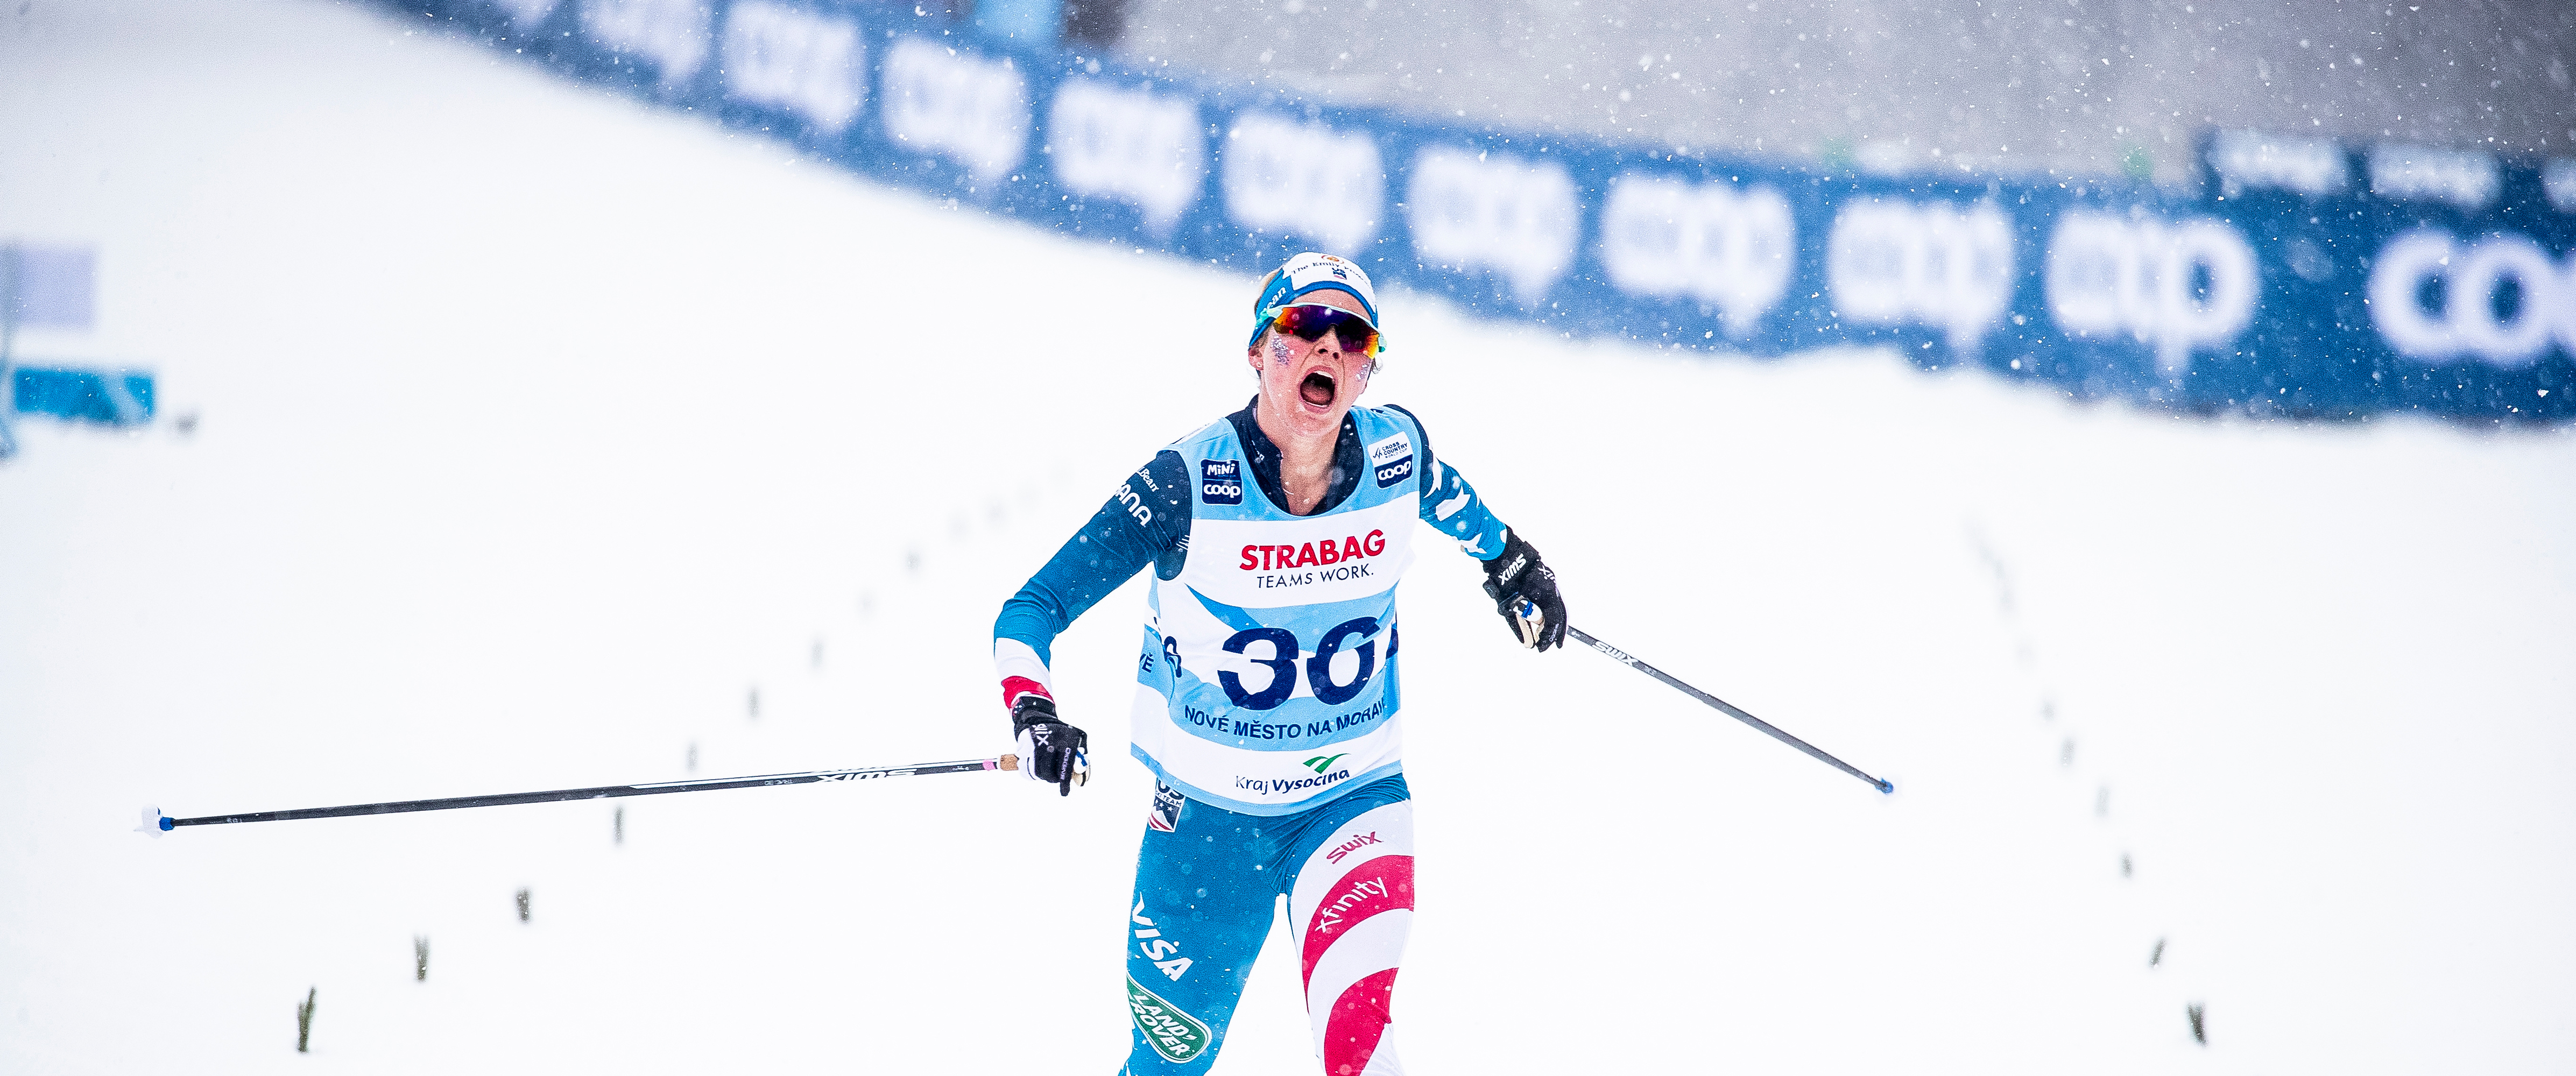 Jessie Diggins finished fourth in Saturday's 10k freestyle FIS Cross Country World Cup. (www.nordicfocus.com. © Modica/NordicFocus.)